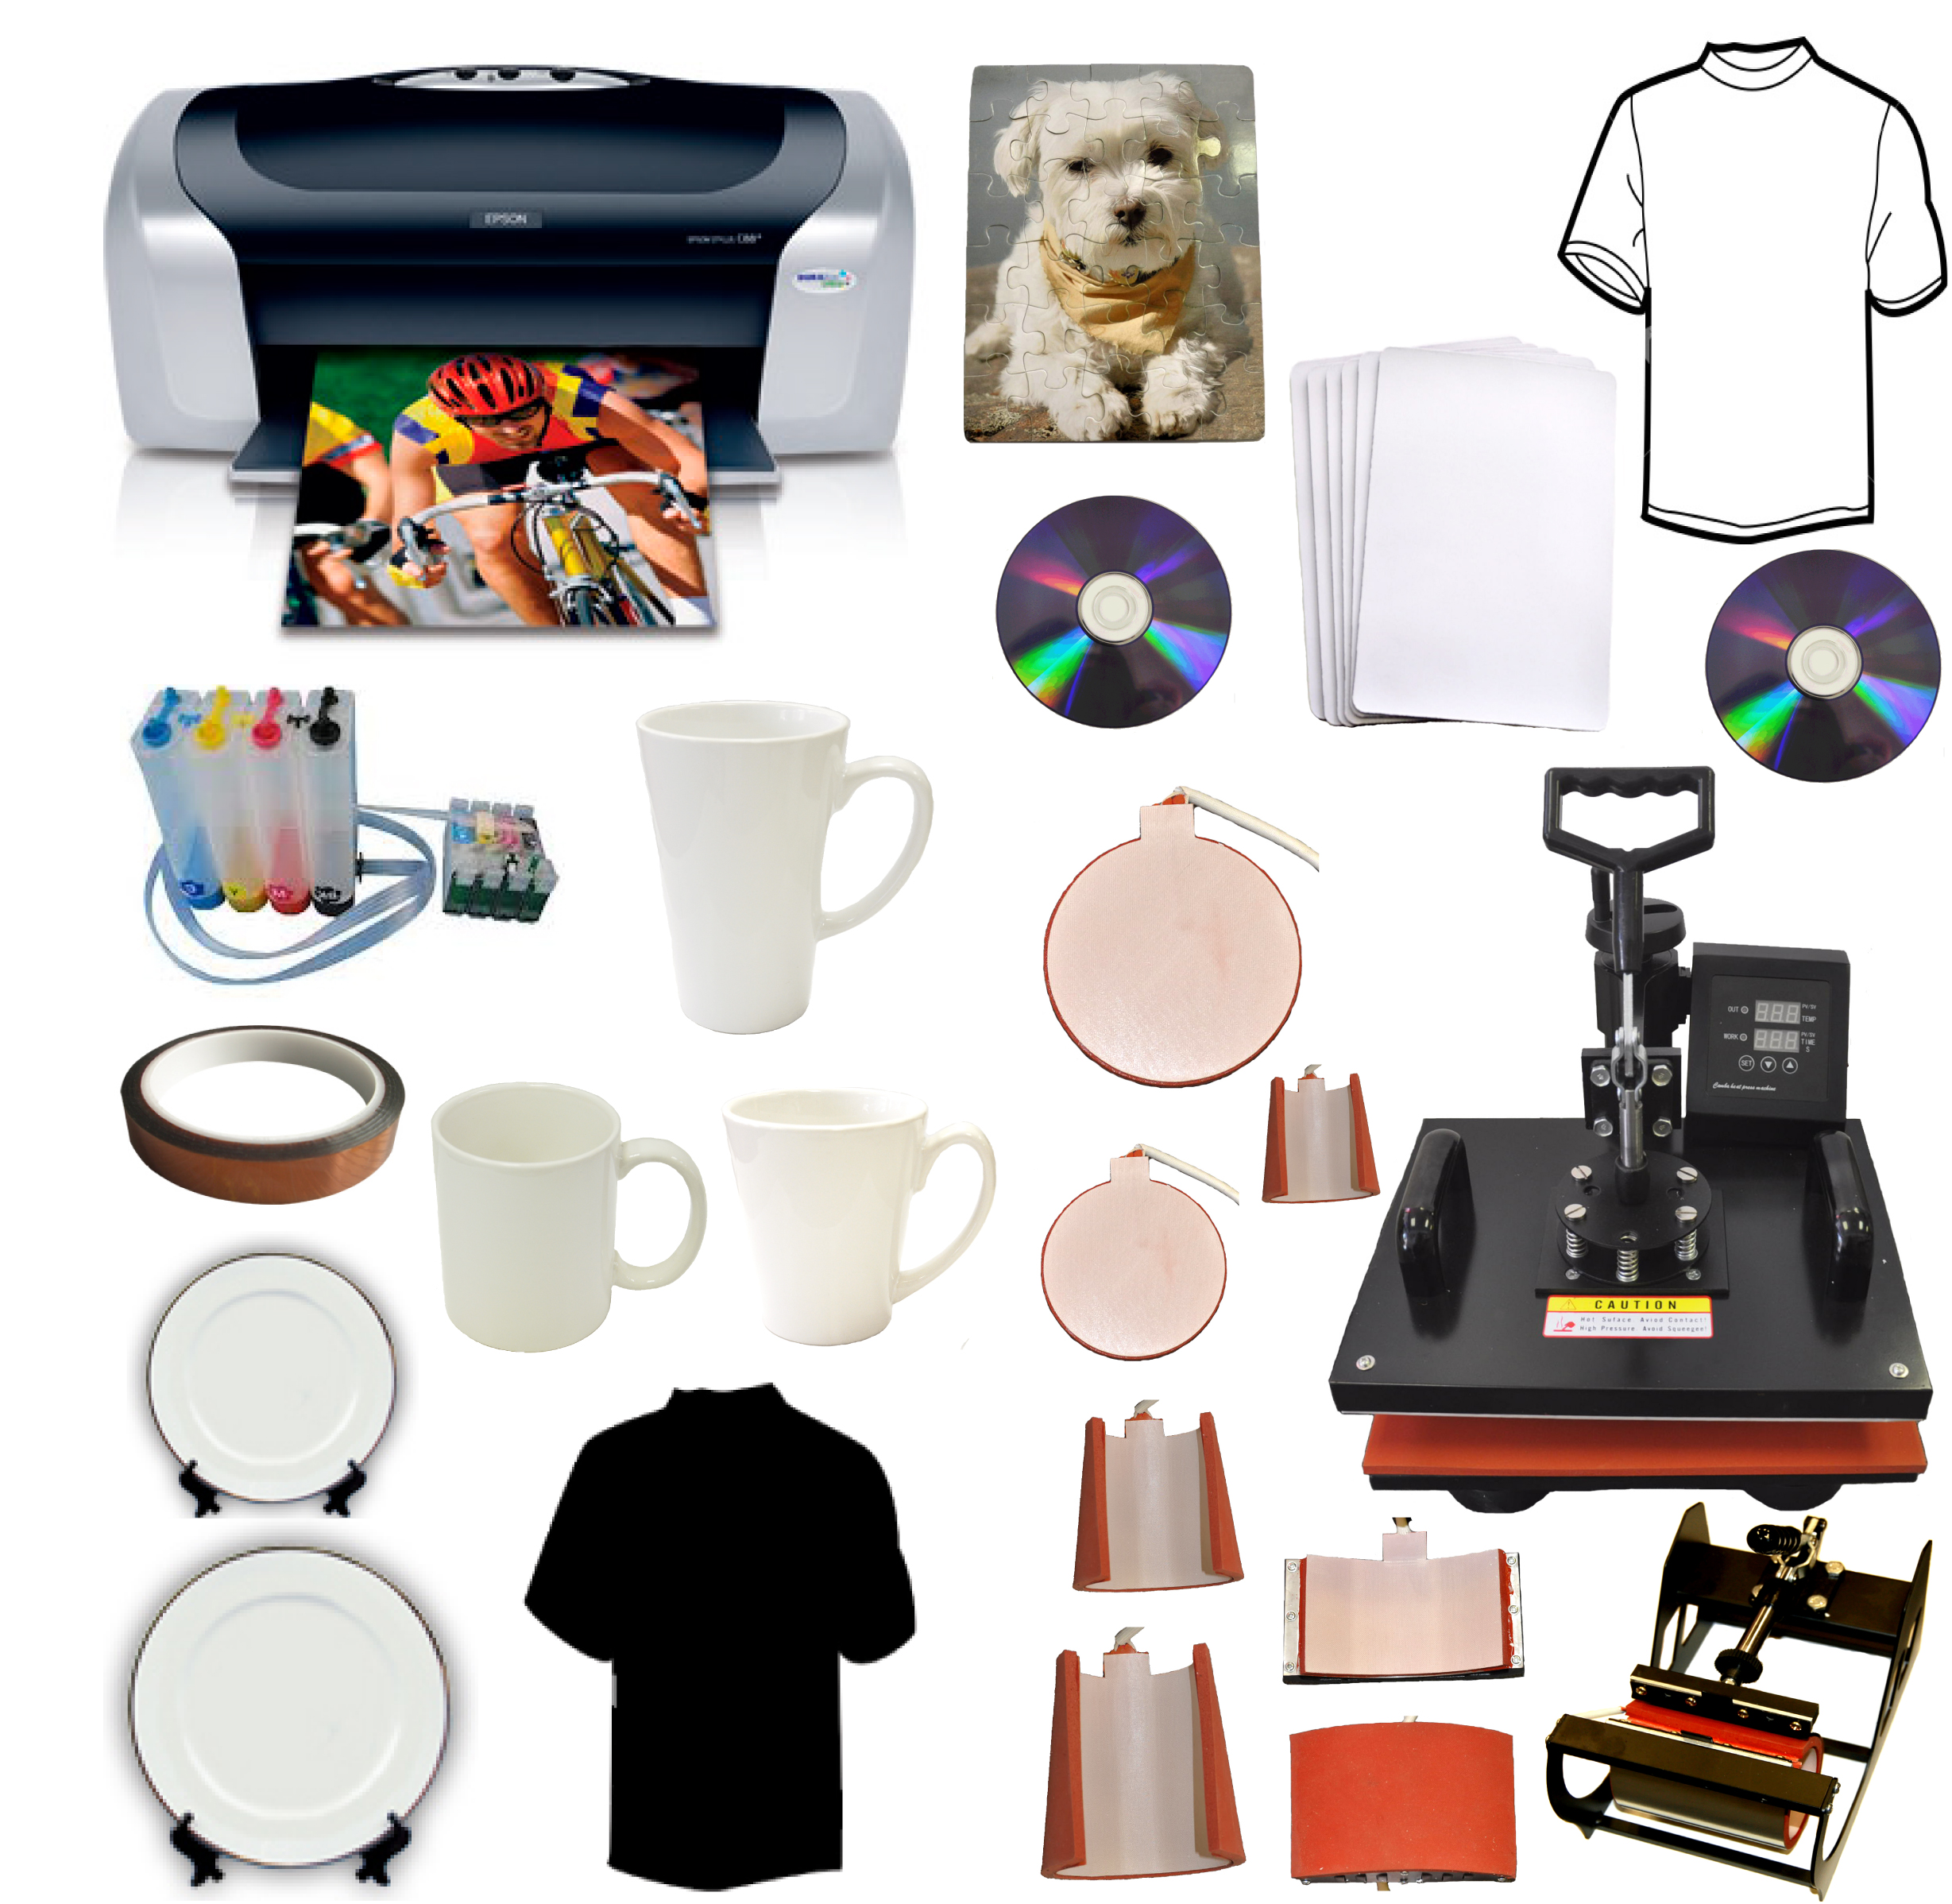 8in1 Sublimation Heat Press,Epson C88 Printer,CISS+400ml Dye Ink